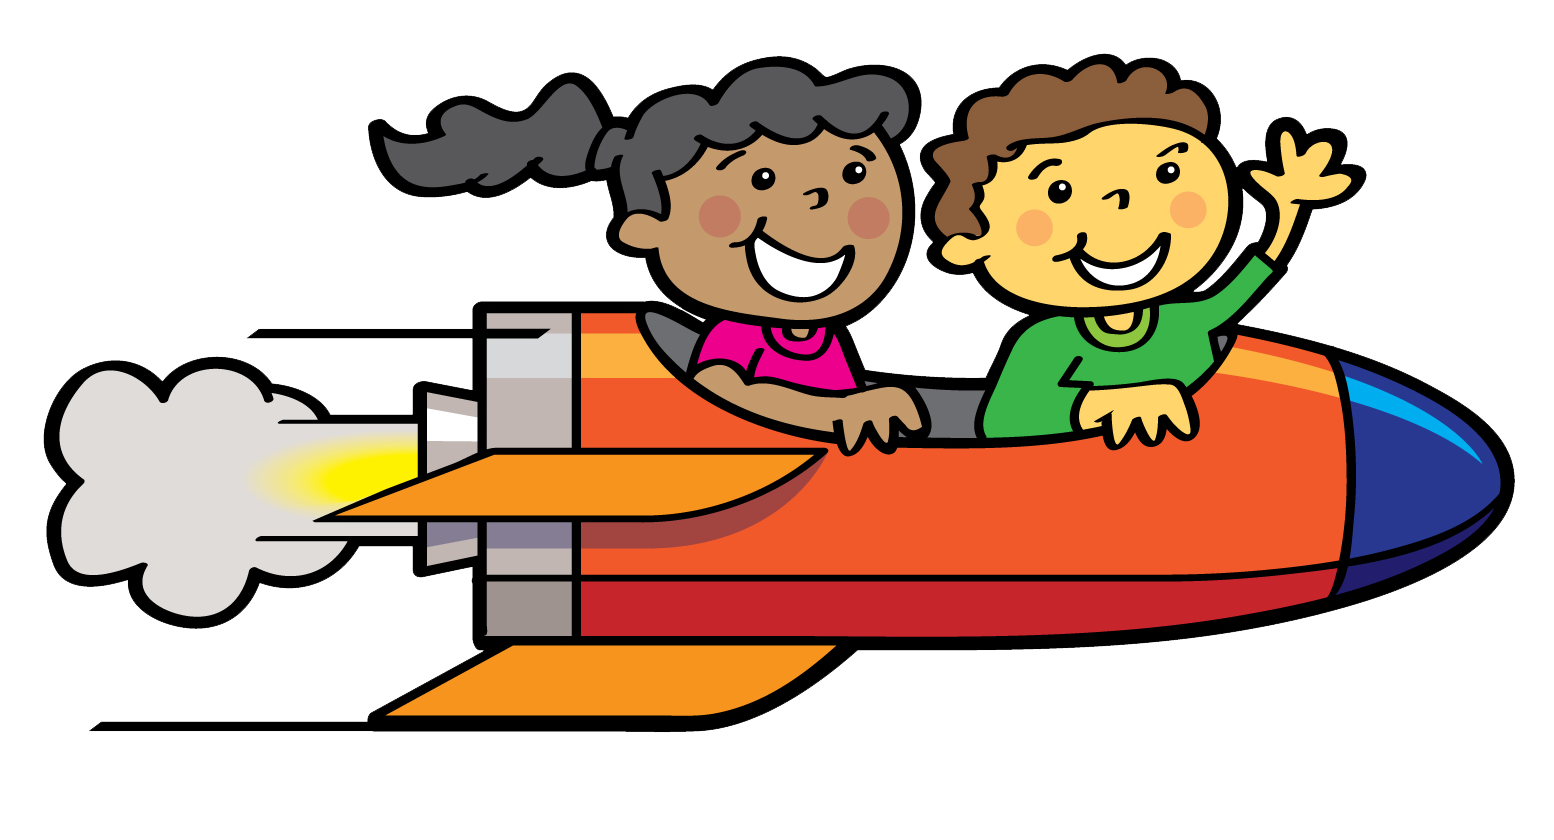 Counseling clipart occupational therapist. Rocket childrens pencil and